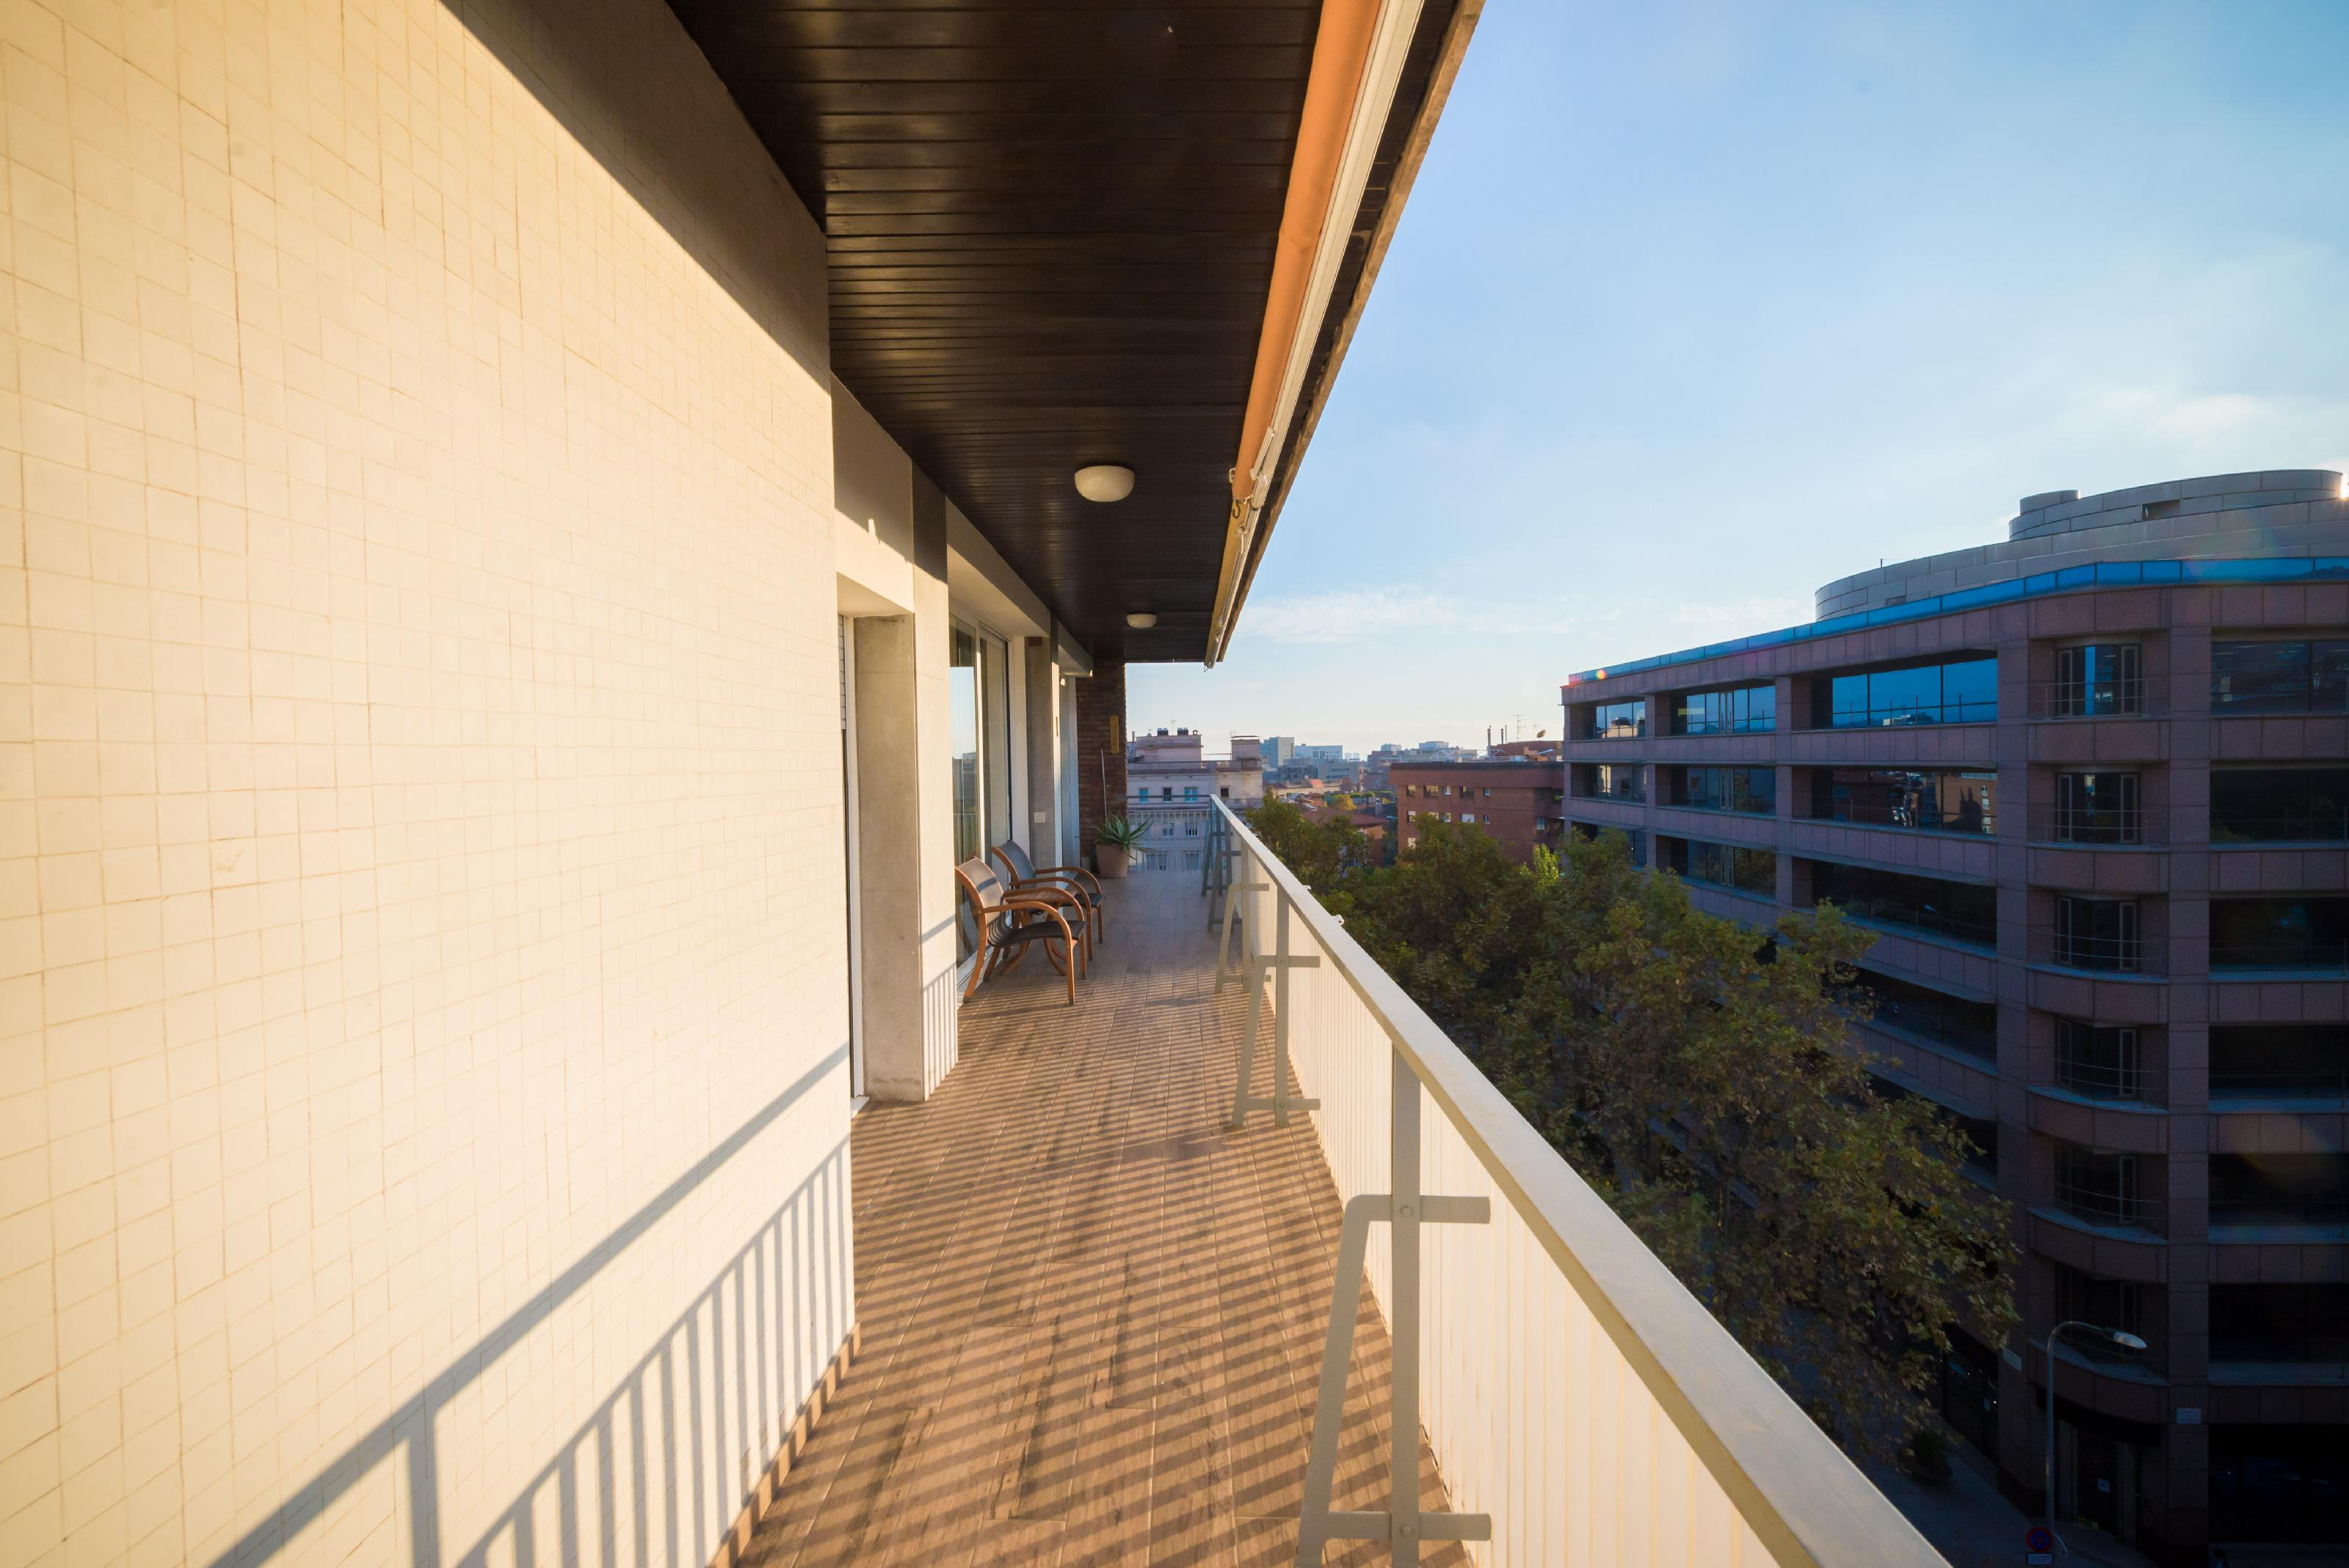 243891 Penthouse for sale in Sarrià-Sant Gervasi, Sant Gervasi-Galvany 10